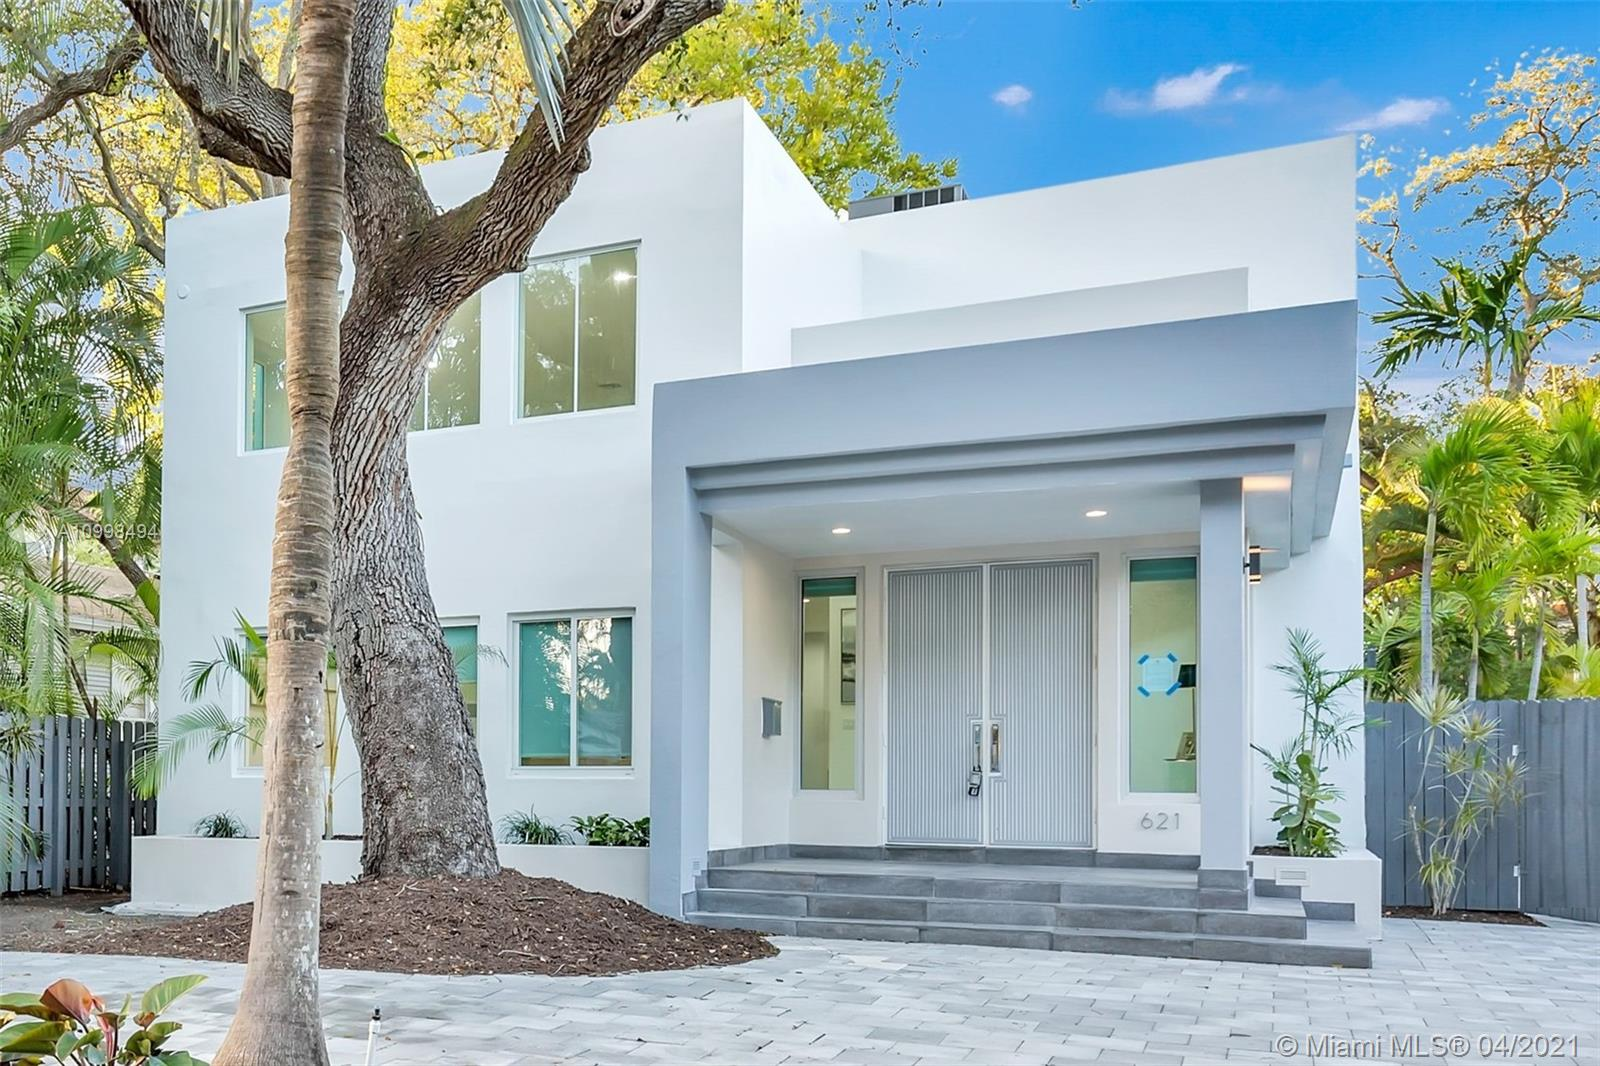 Beautifully remodeled 2 story home in the tree lined Rio Vista neighborhood. Located just south of the New River, with easy access to Las Olas Blvd and Downtown Ft. Lauderdale. The spacious home has 3 beds/3 baths in the main house with a separate 1/1 guest house with kitchen. The home includes a formal living room, dining room, family room and expansive kitchen.  Recently added glass railing on the balcony of the master bedroom looks out to the welcoming pool and the beautiful tree canopy.